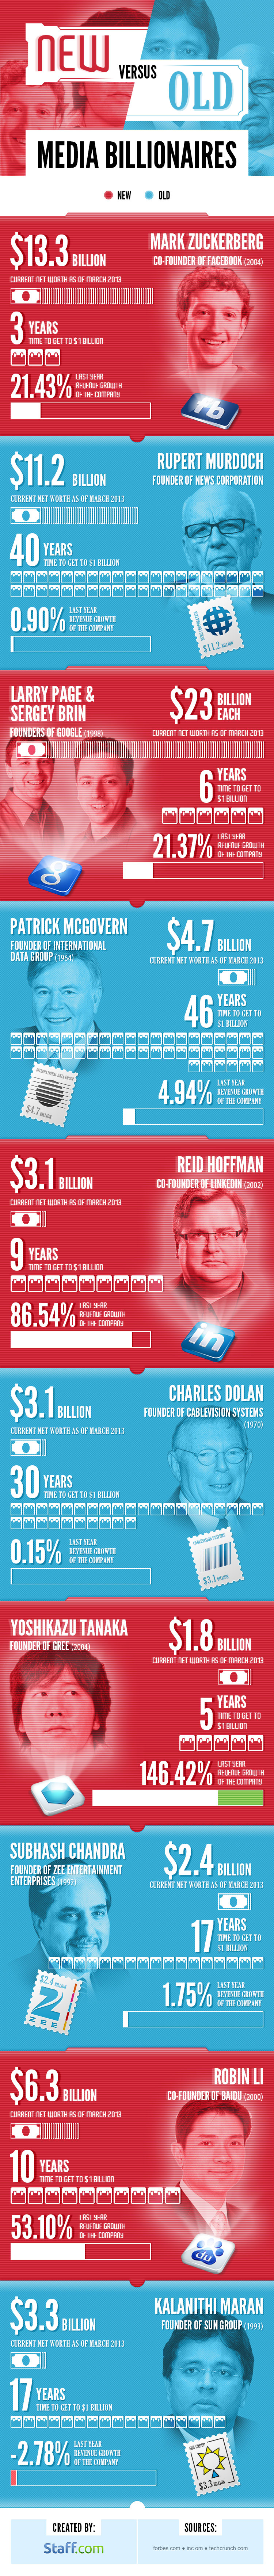 Ben Martin Infographic New-vs-Old-Billionaires